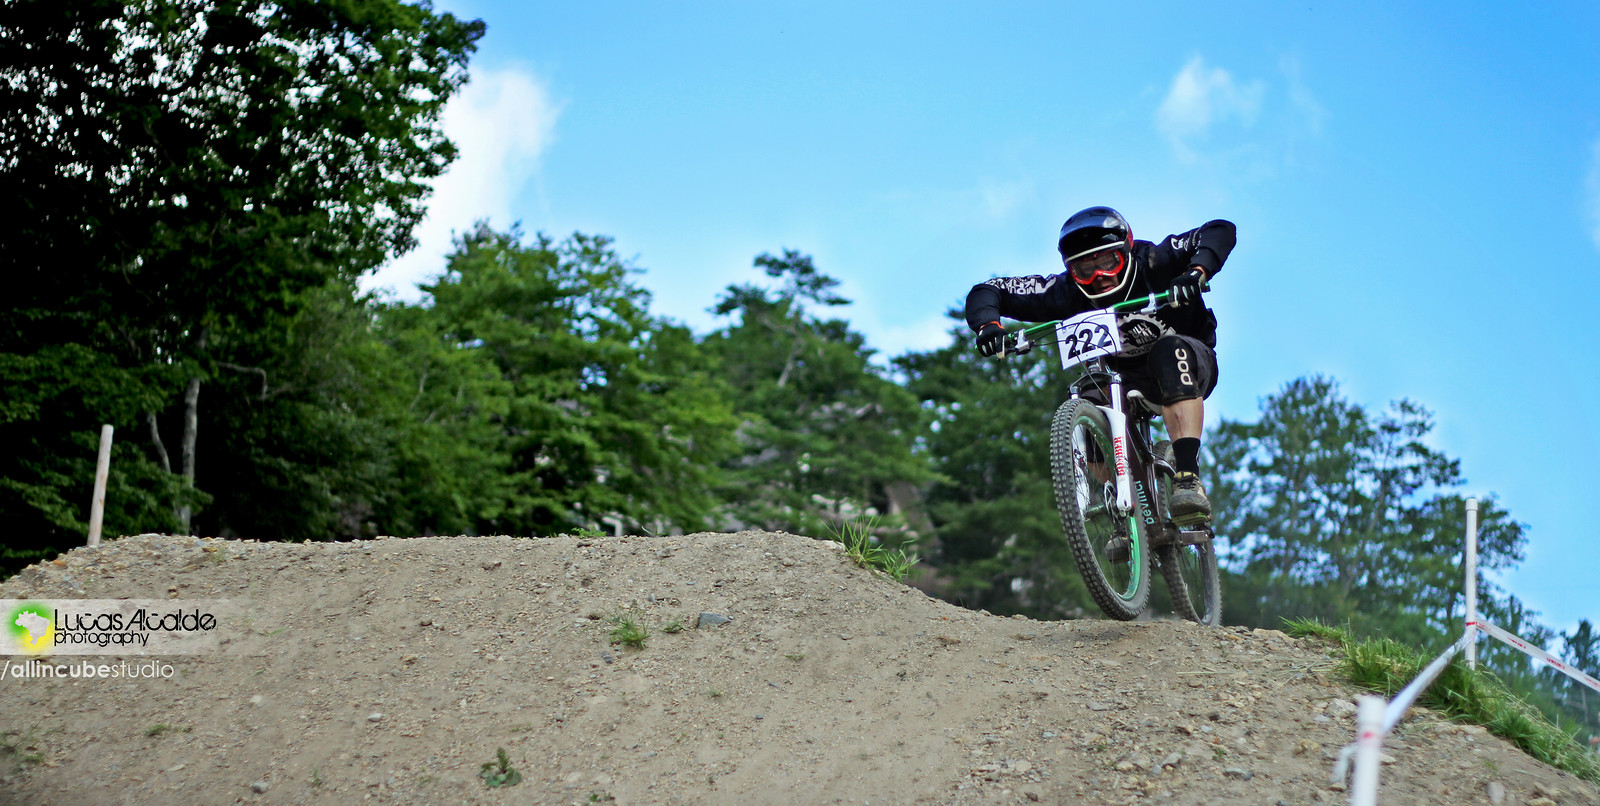 Jay Guidry braaaaap - Lucas_Alcalde - Mountain Biking Pictures - Vital MTB